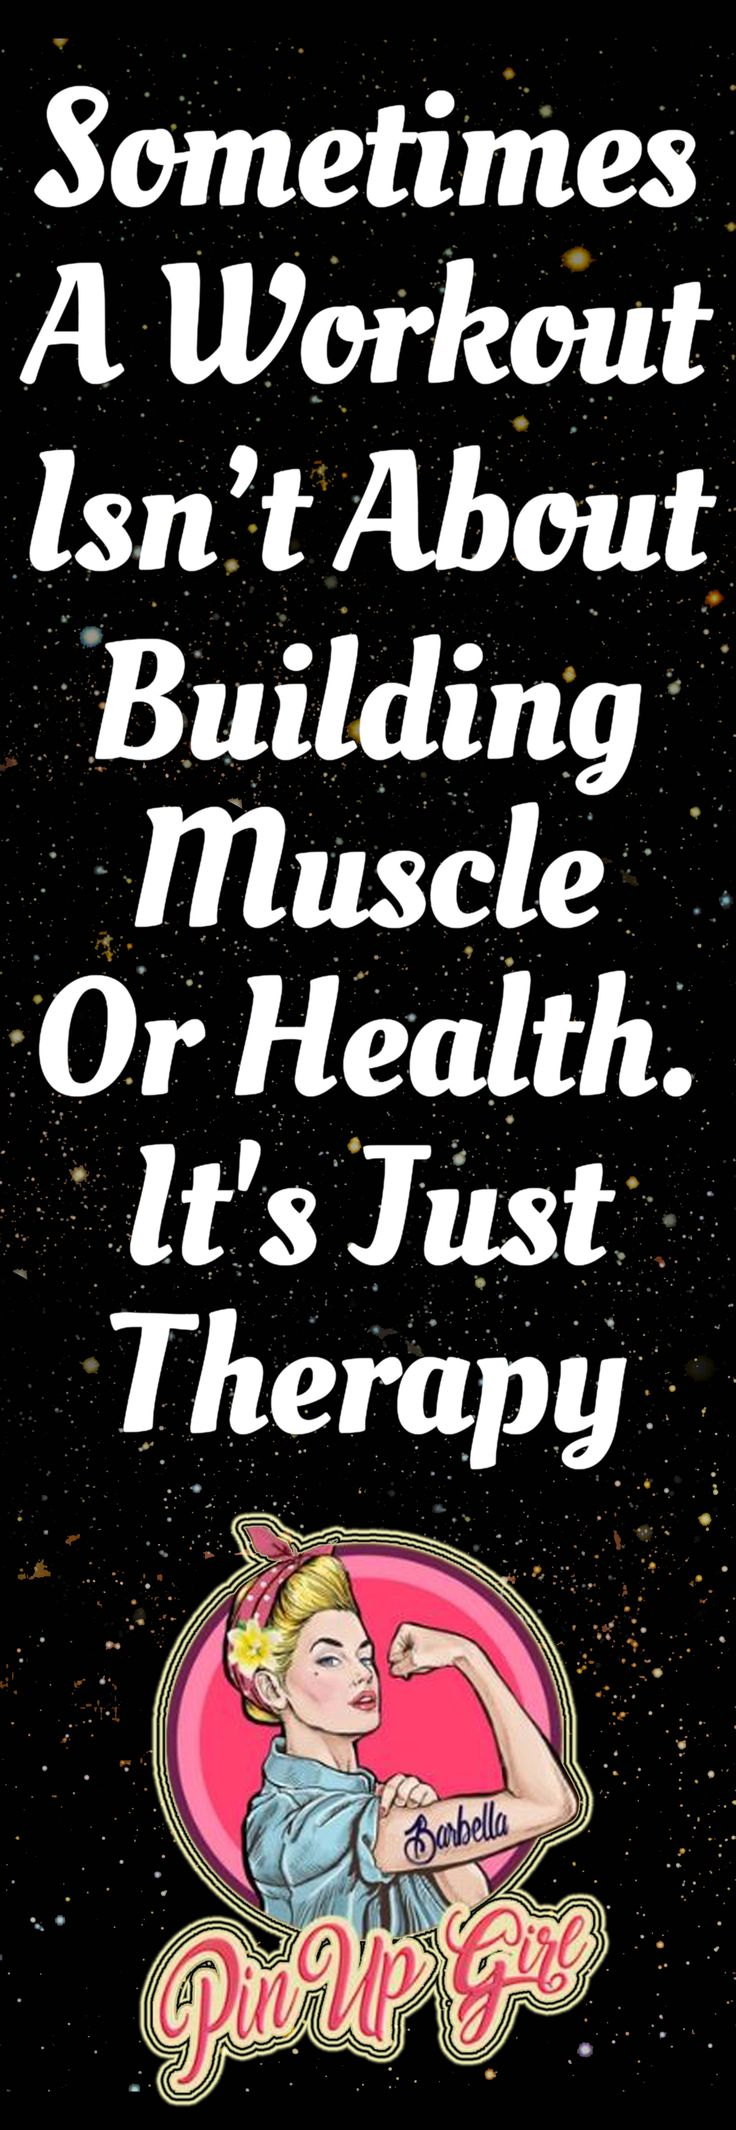 Sometimes A Workout Isn't About Building Muscle Or Health. It's Just Therapy. #fitness #fitnessgirl #bodybuilding#exercises #gymlife #fitnessinspiration#squatlife #bootygainsplease #fit#training #workout #motivation#fitnessjourney #fitnessfun #protein#pinupgirlprotein